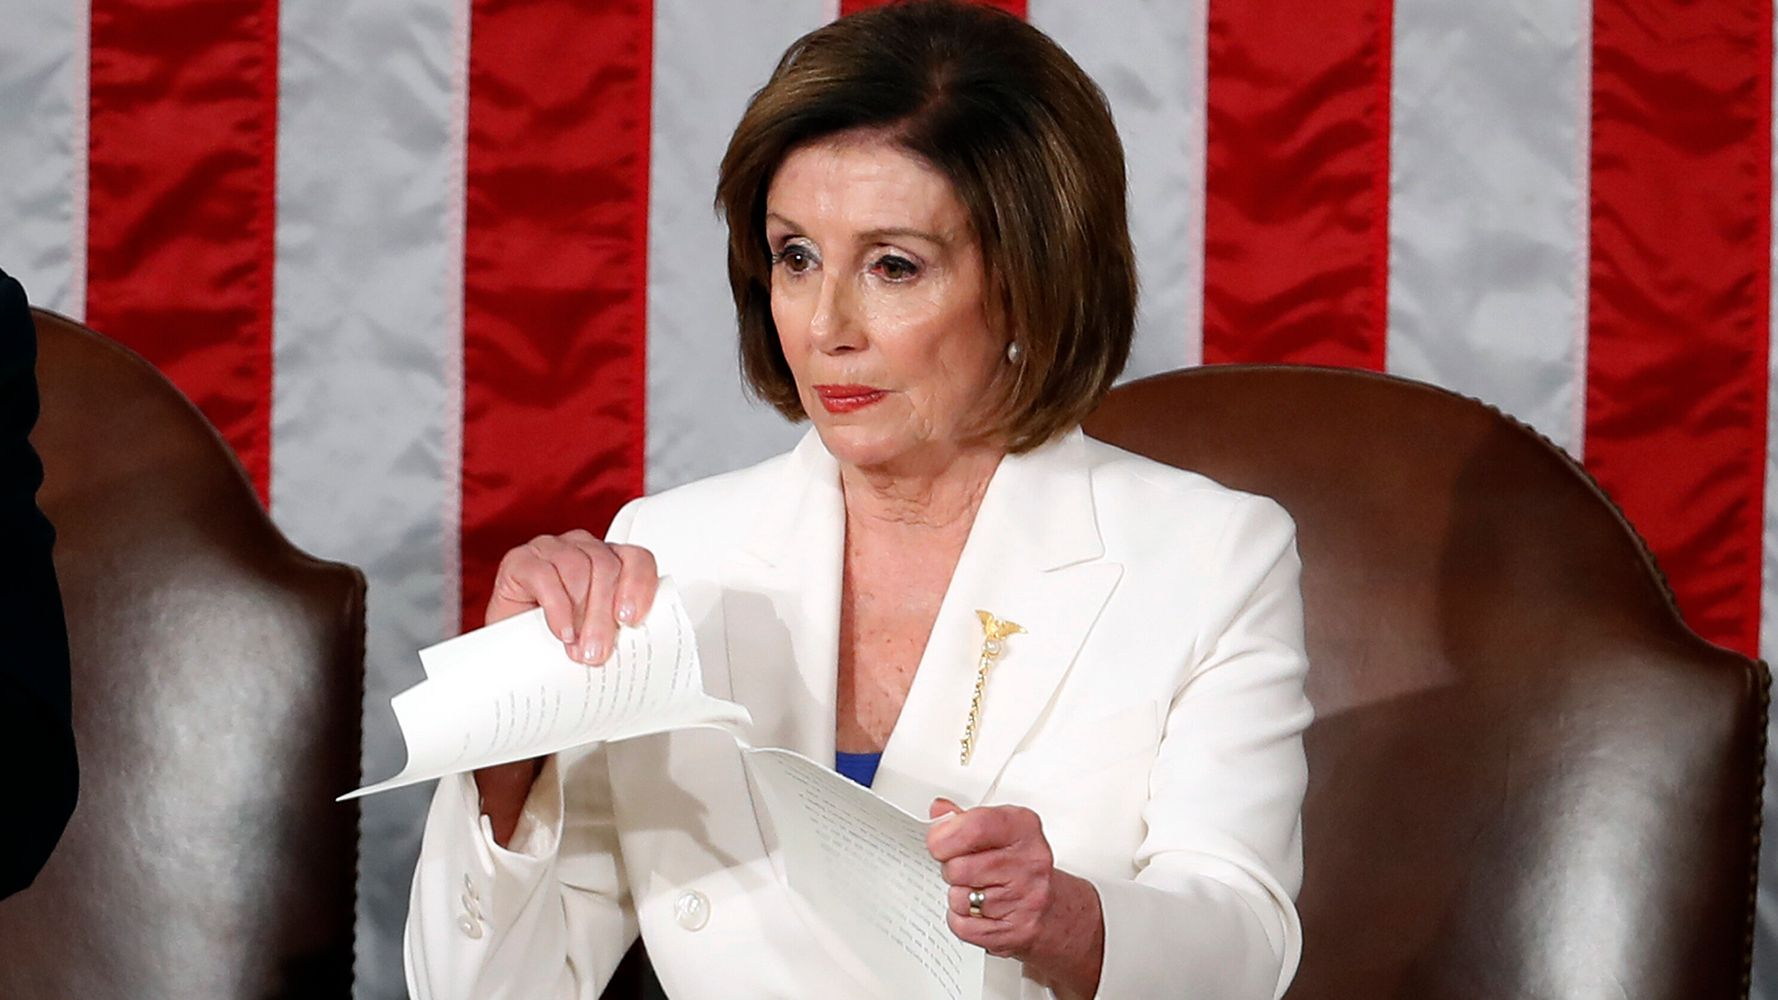 Westlake Legal Group 5e3e6efd210000b407e1cd4a Pelosi Rips Republicans For 'Normalizing Lawlessness' In Scathing WaPost Op-Ed